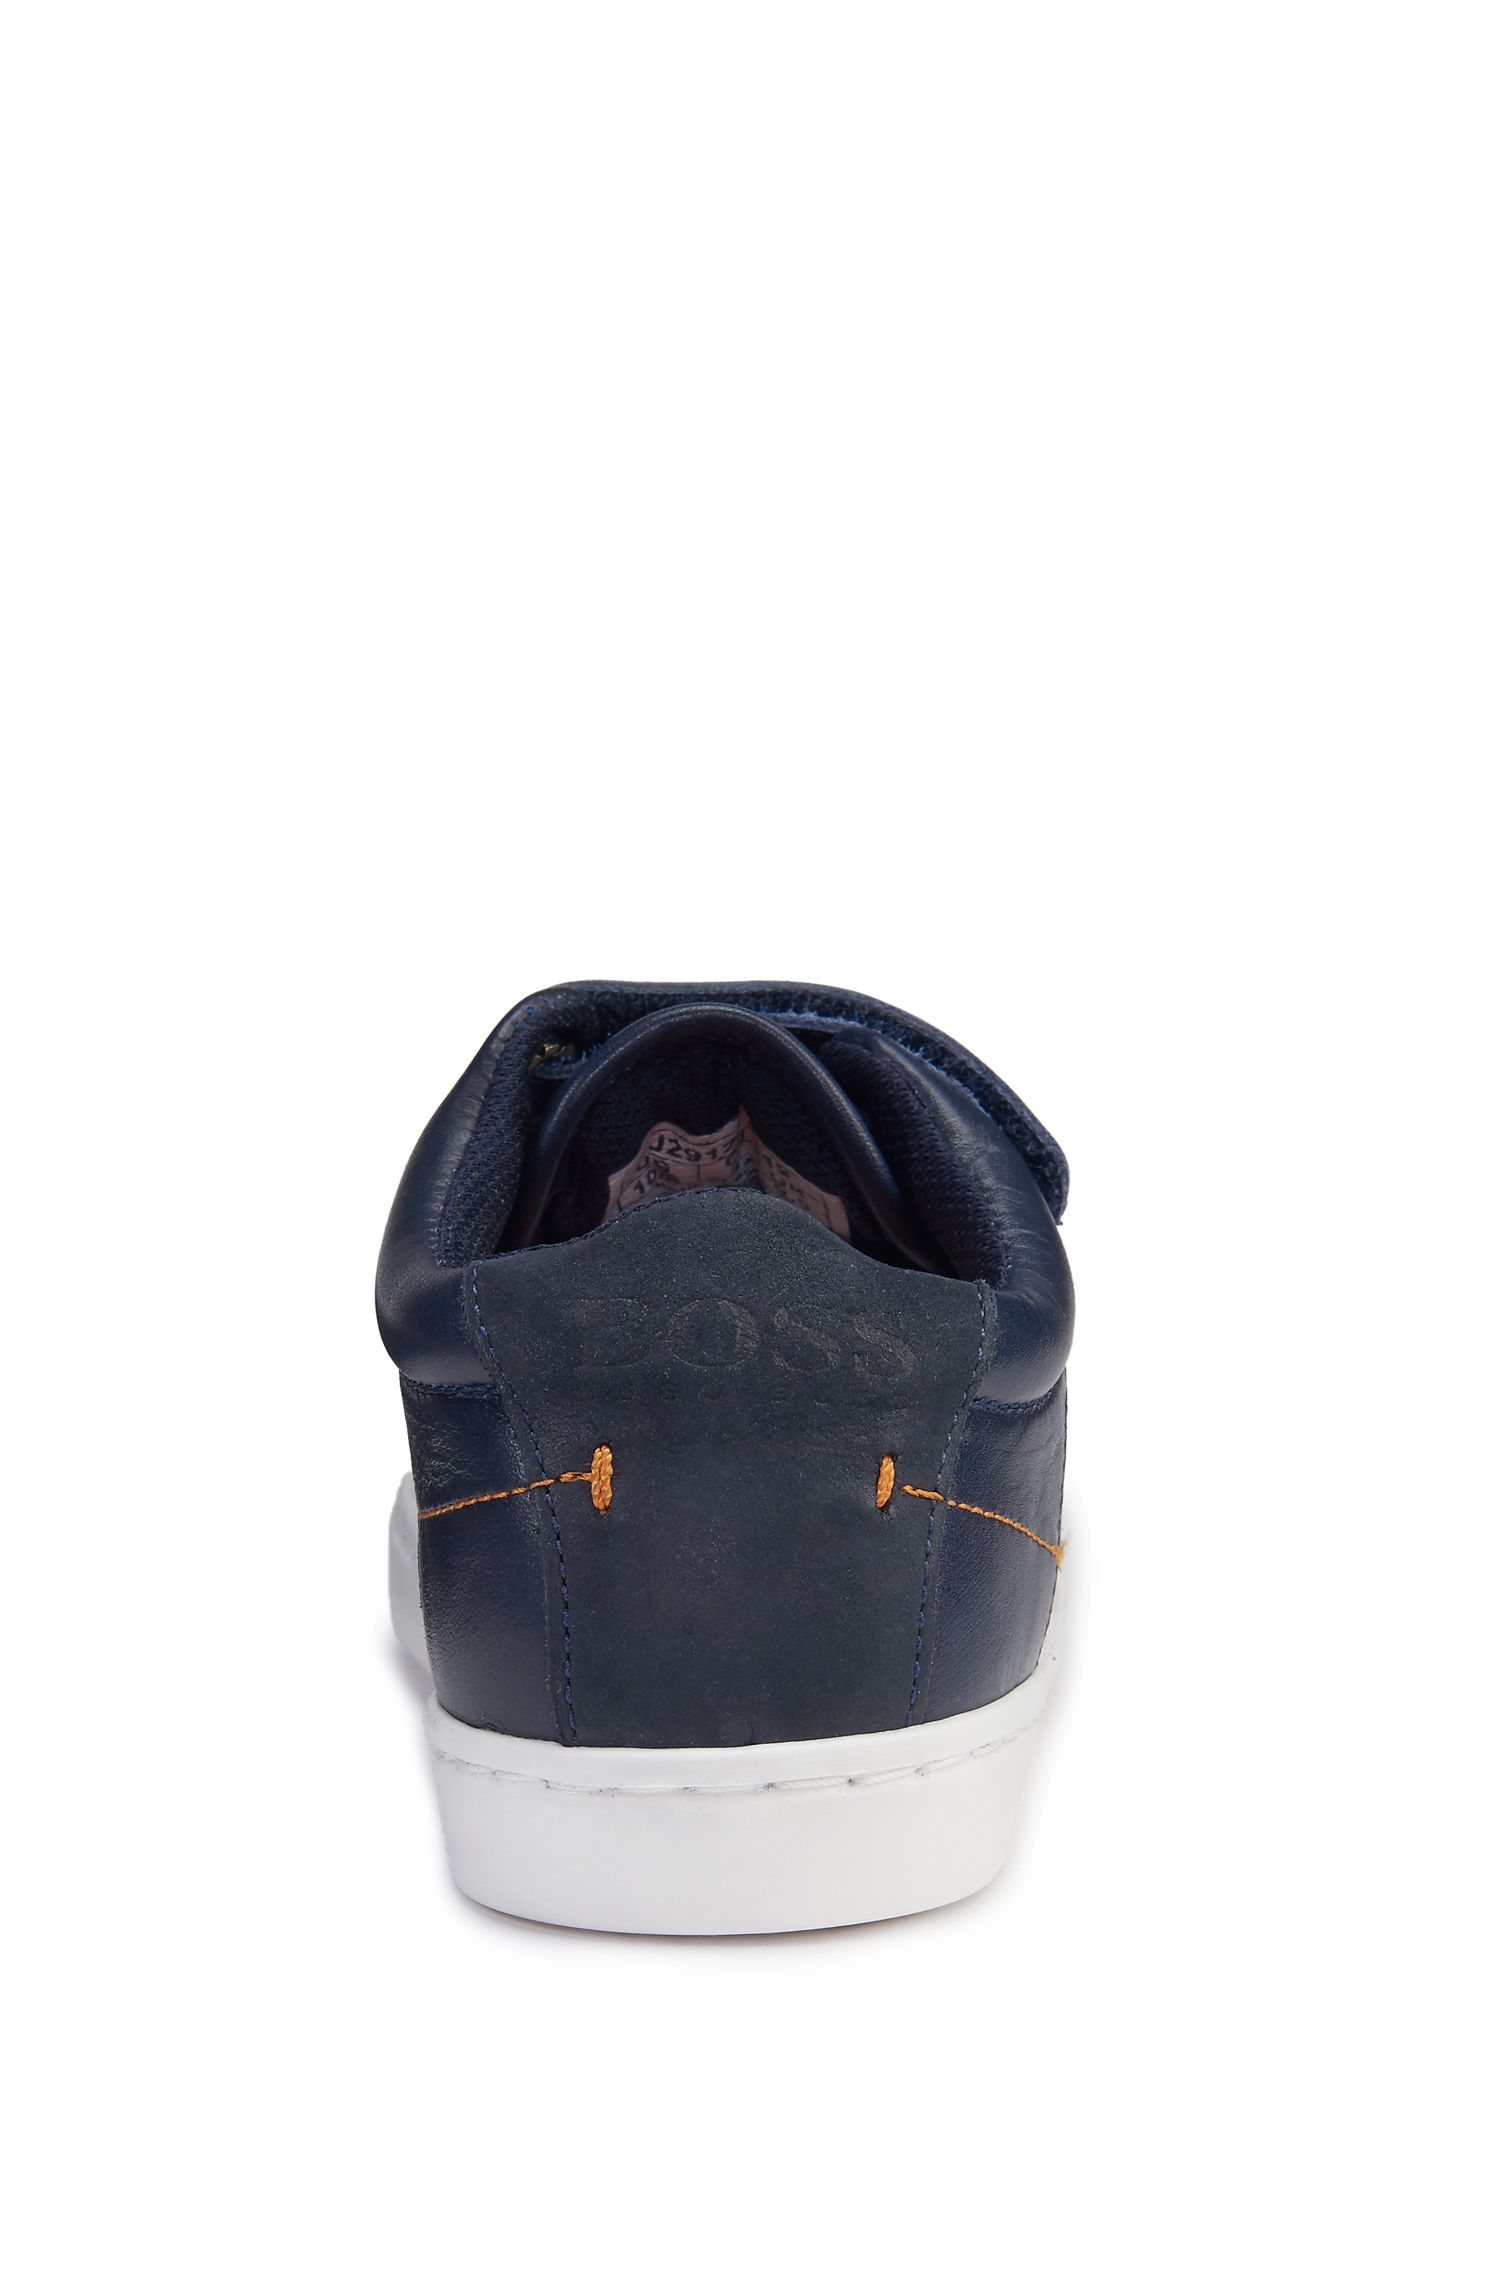 Kids' Leather Velcro Sneaker | J29122/84927